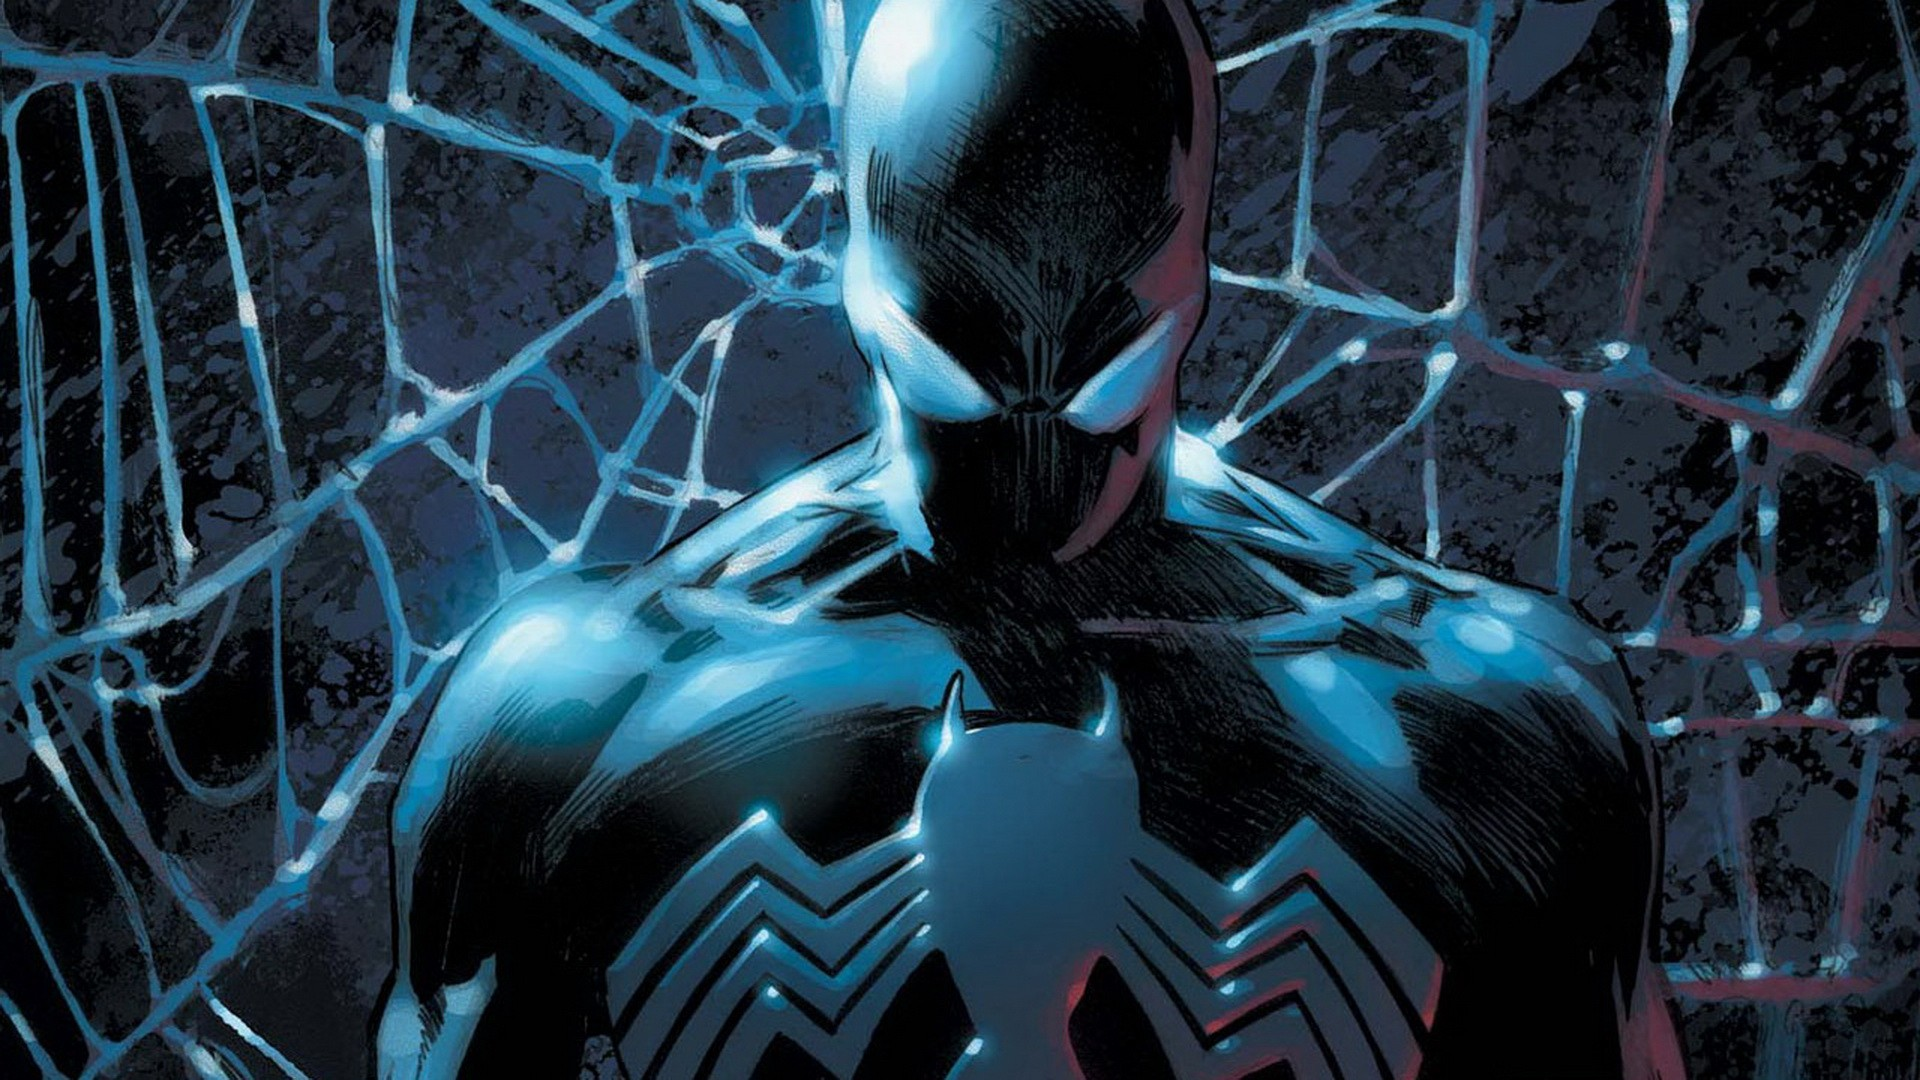 Shattered Dimensions Hd Wallpaper Symbiote Spiderman 98011